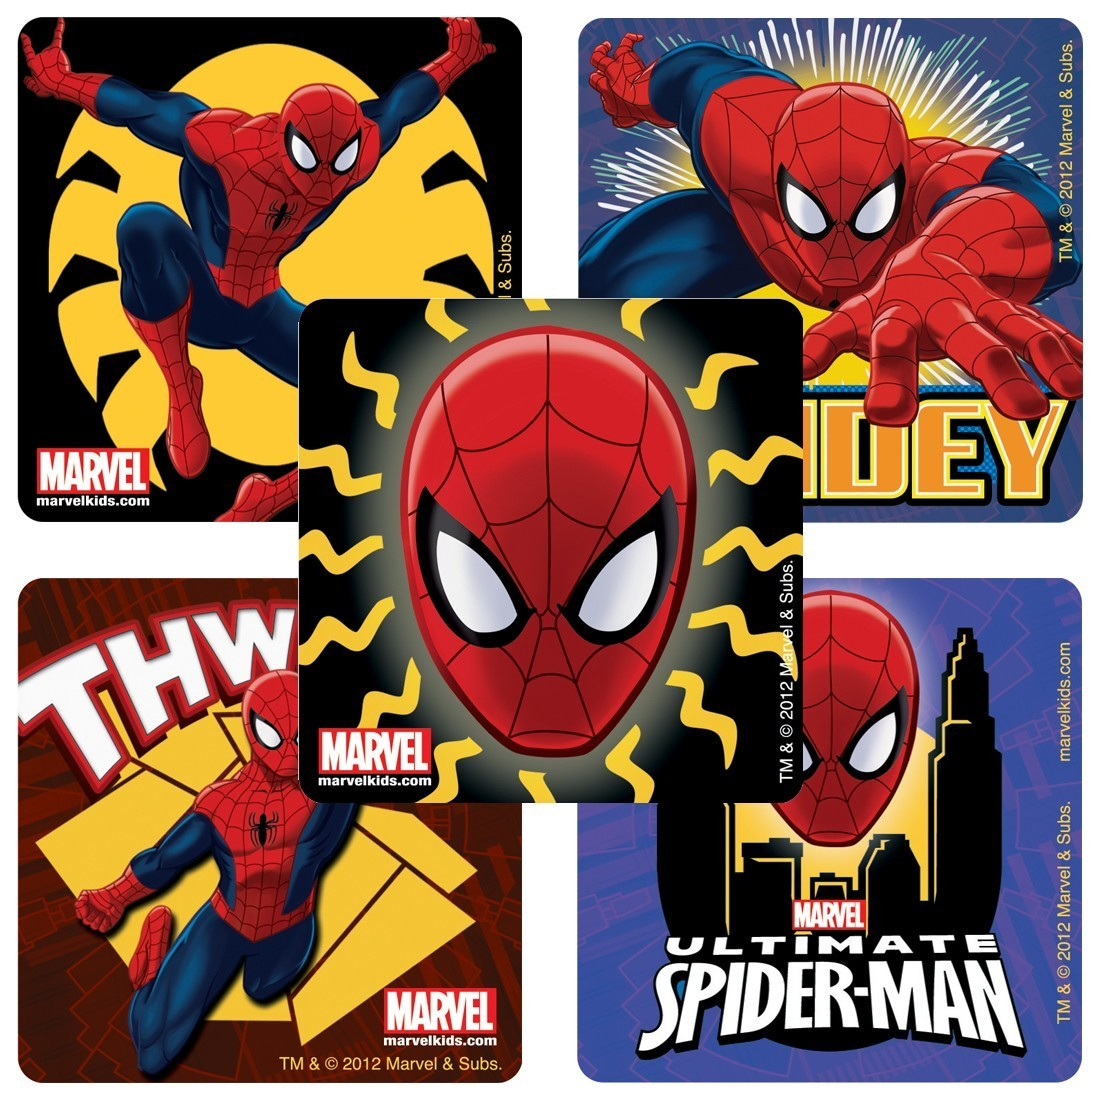 Glow in the Dark Spider-Man™ Stickers         [image]